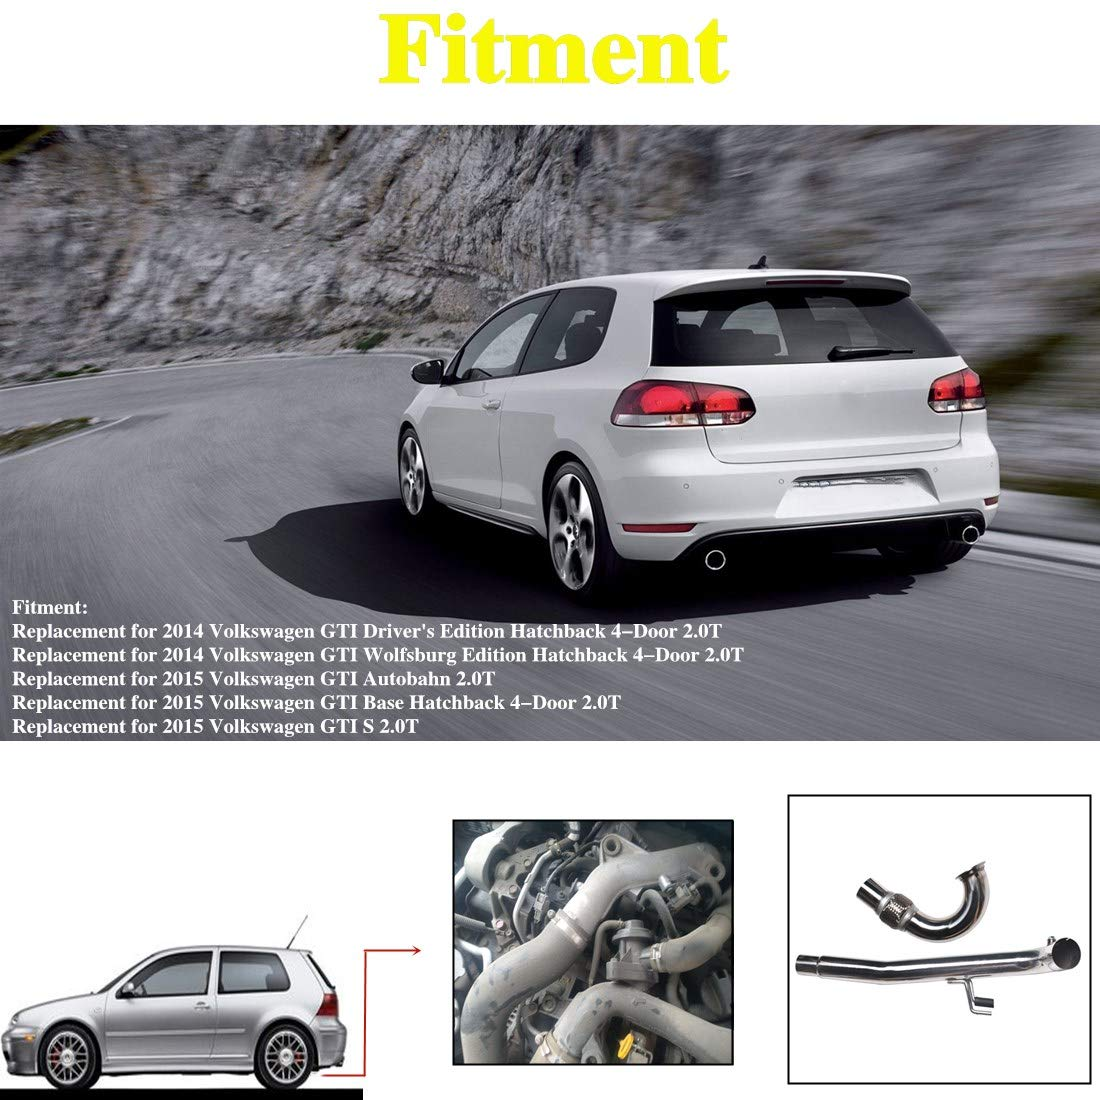 WFLNHB Exhaust System Stainless Steel Exhaust Pipe 2Pcs Kit Replacement for 2014-2015 VW GTI 2.0T MK7 Bolt-on Turbo piping